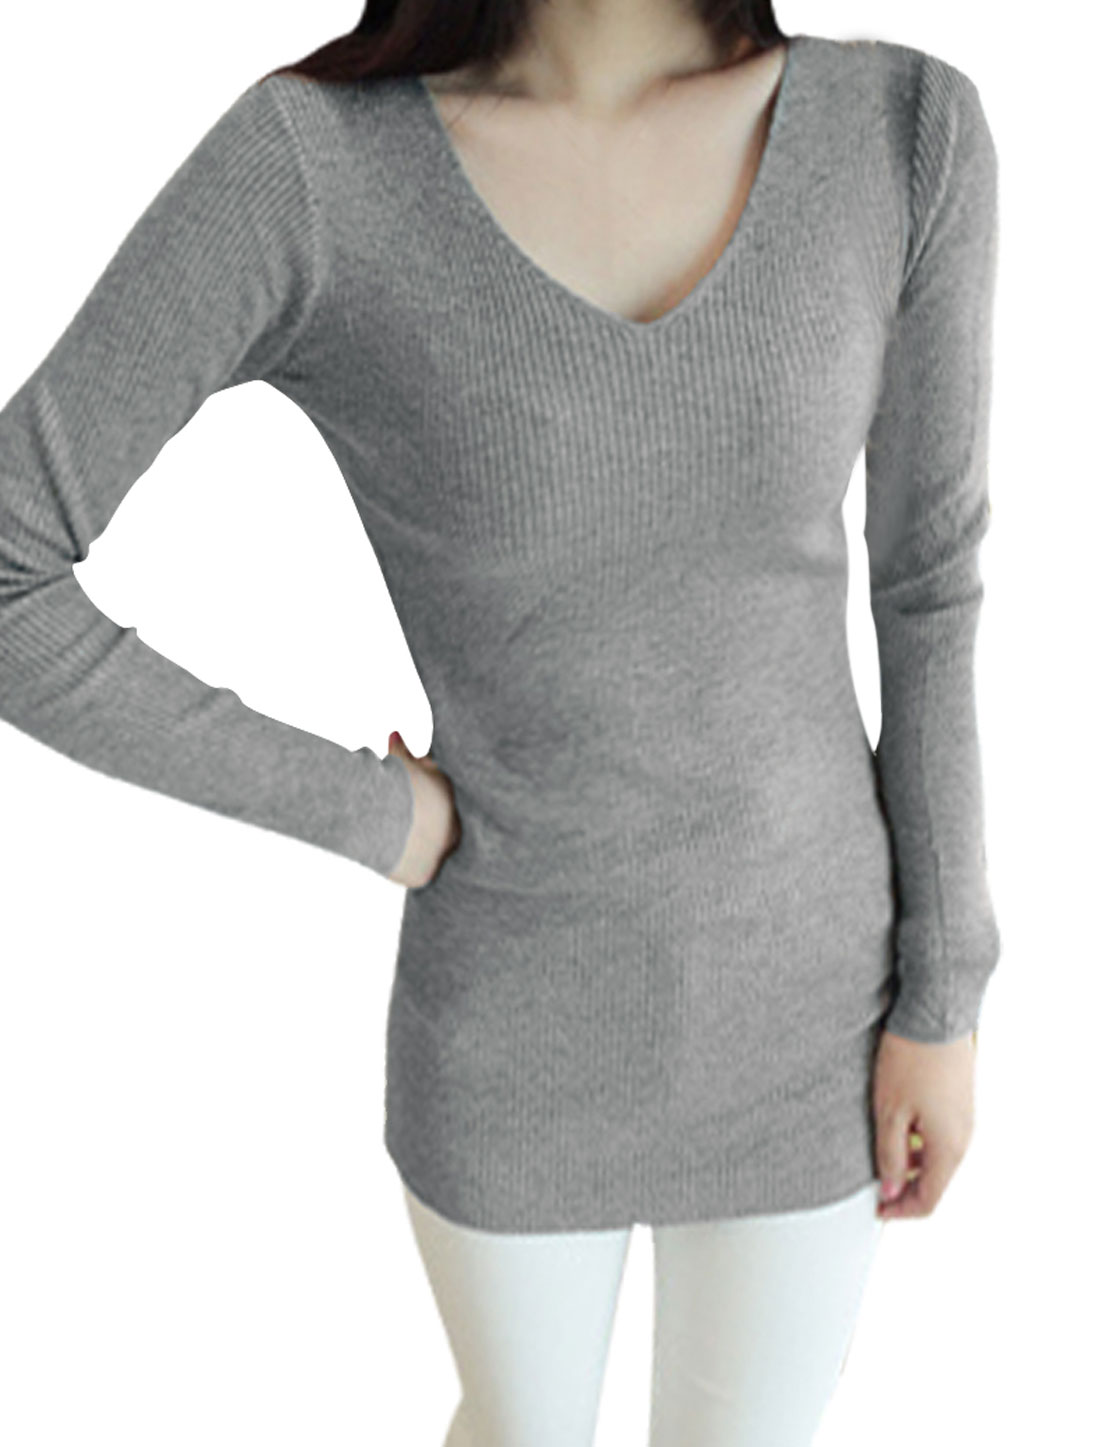 Women Stretchy V-Neck Ribbed Light Gray Knit Tunic Shirt XS